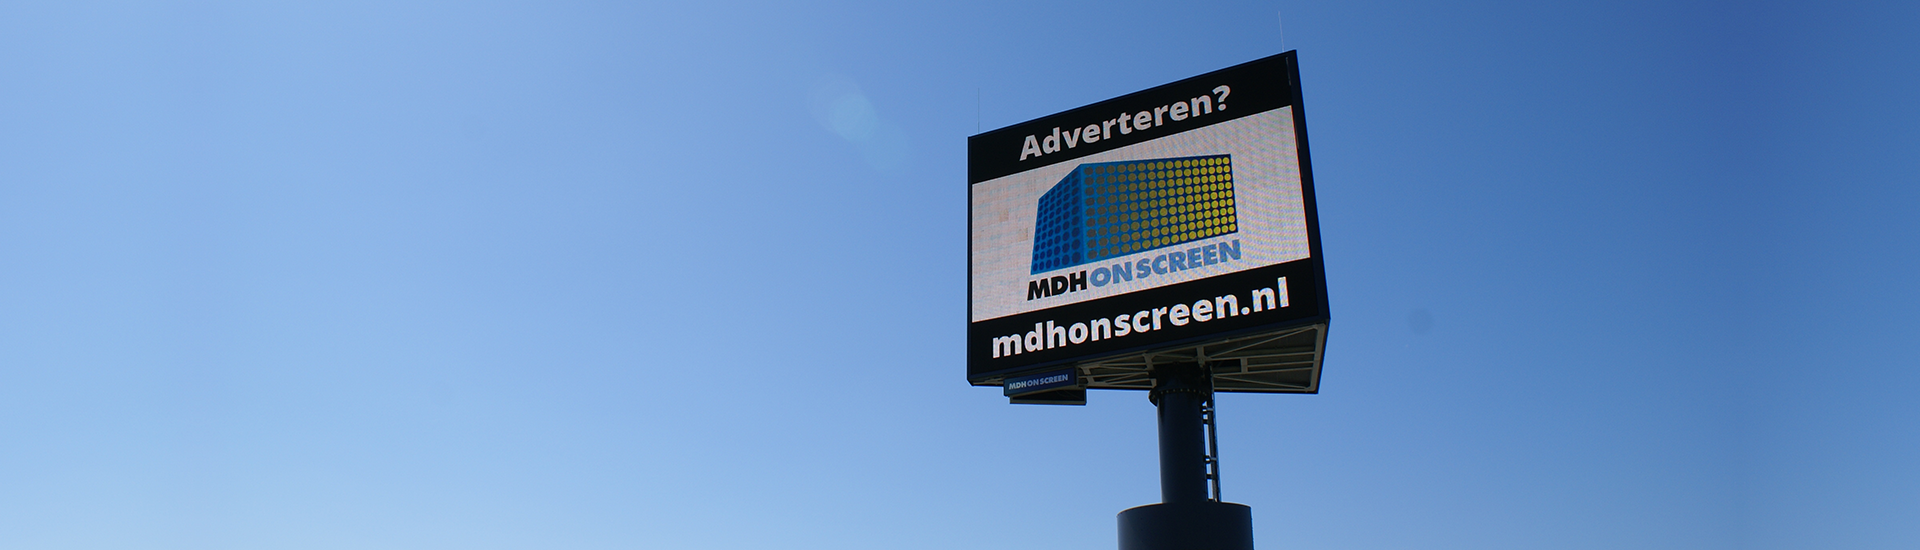 Snelwegreclame A18 - MDH On Screen